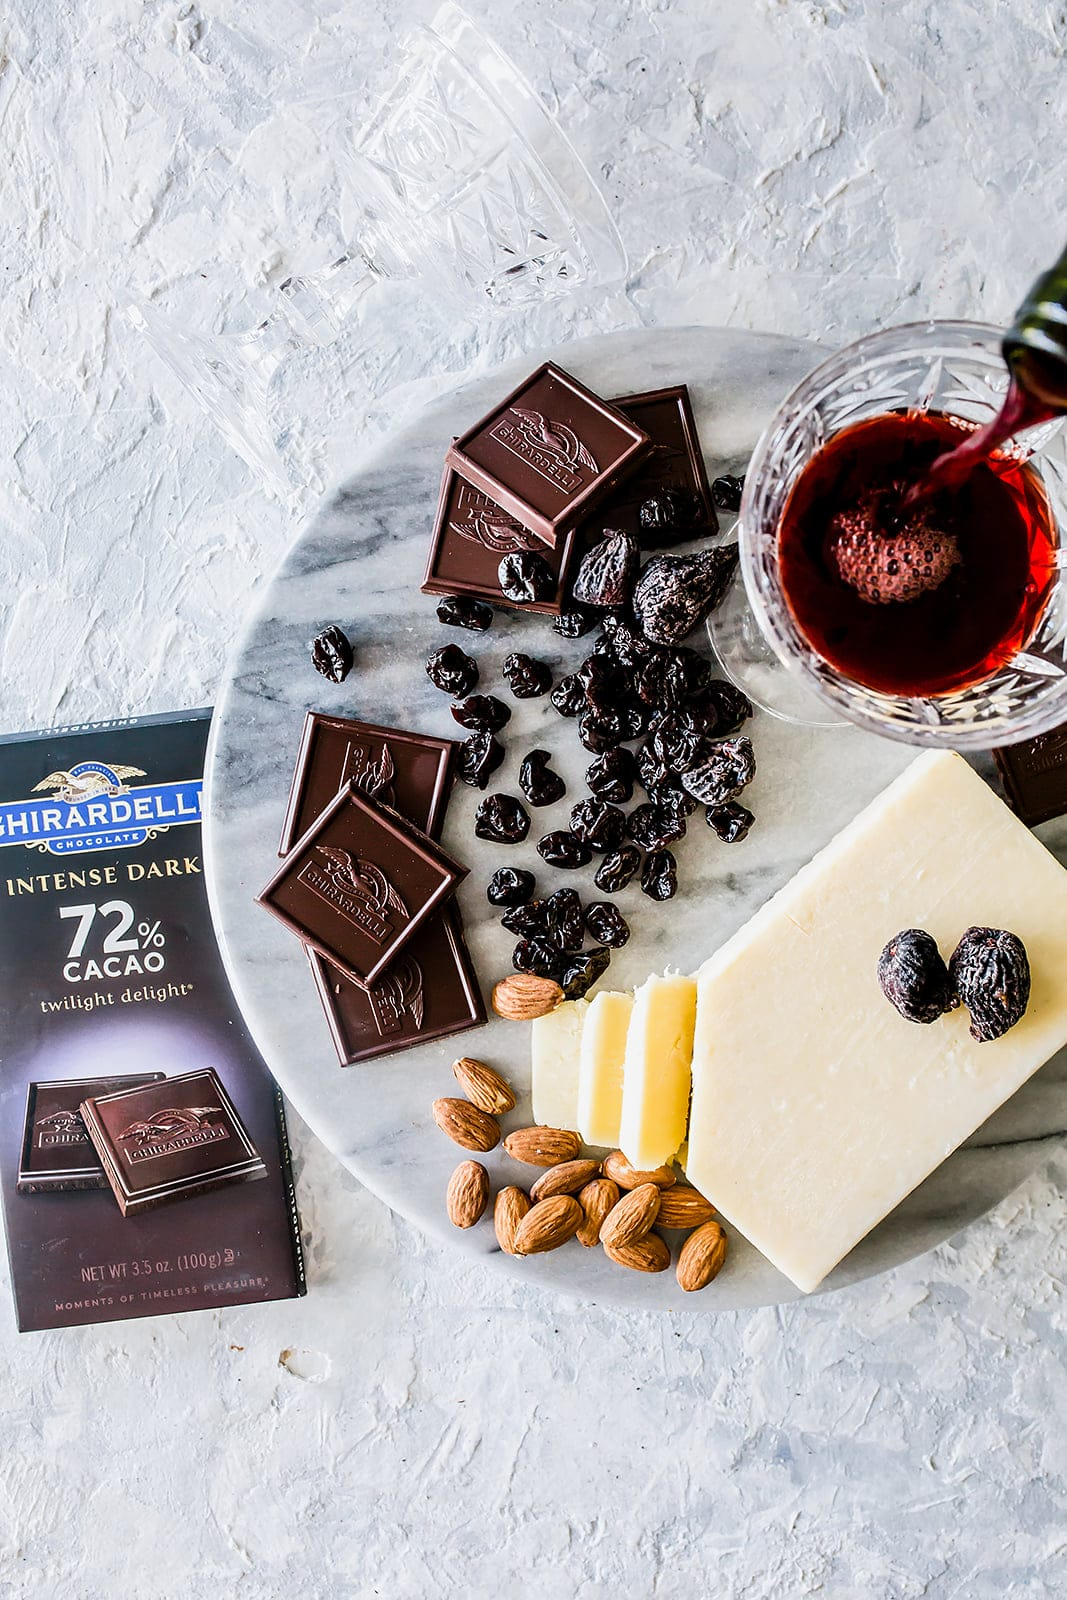 The velvety and deep 72% Cacao Twilight Delight pairs beautifully with a Cabernet Sauvignon, almonds, dried fruit, and cheese such as Spanish Manchego